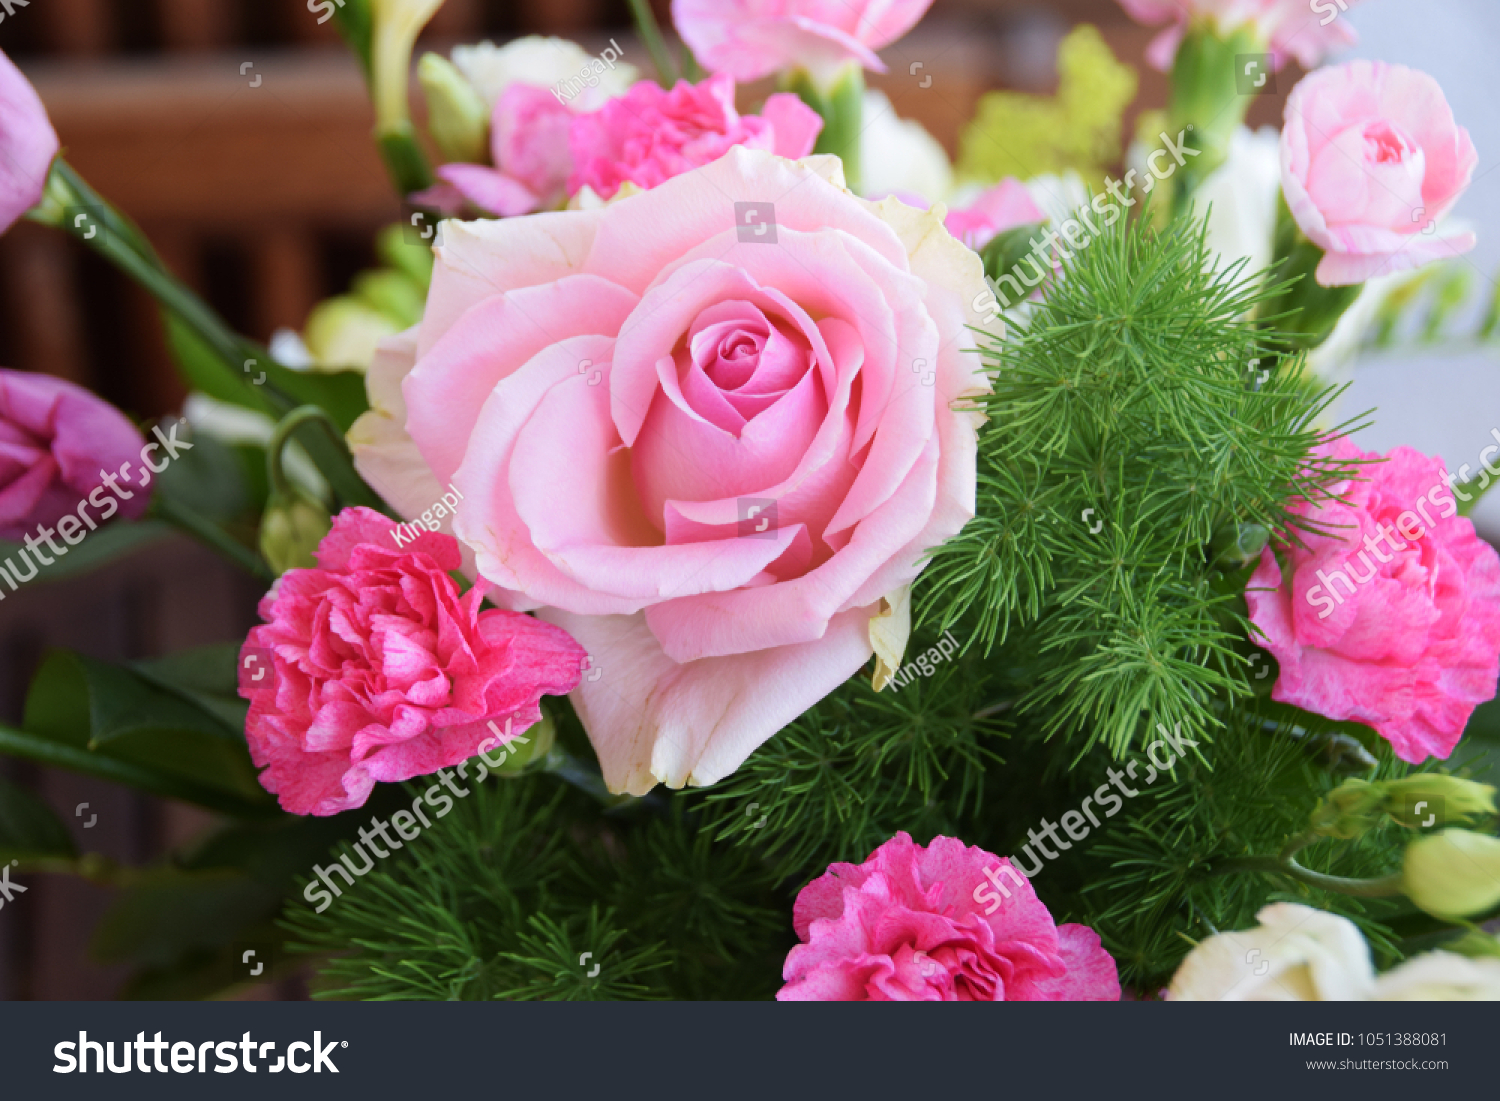 Roses Pink Flowers Background Rose Flower Stock Photo Edit Now